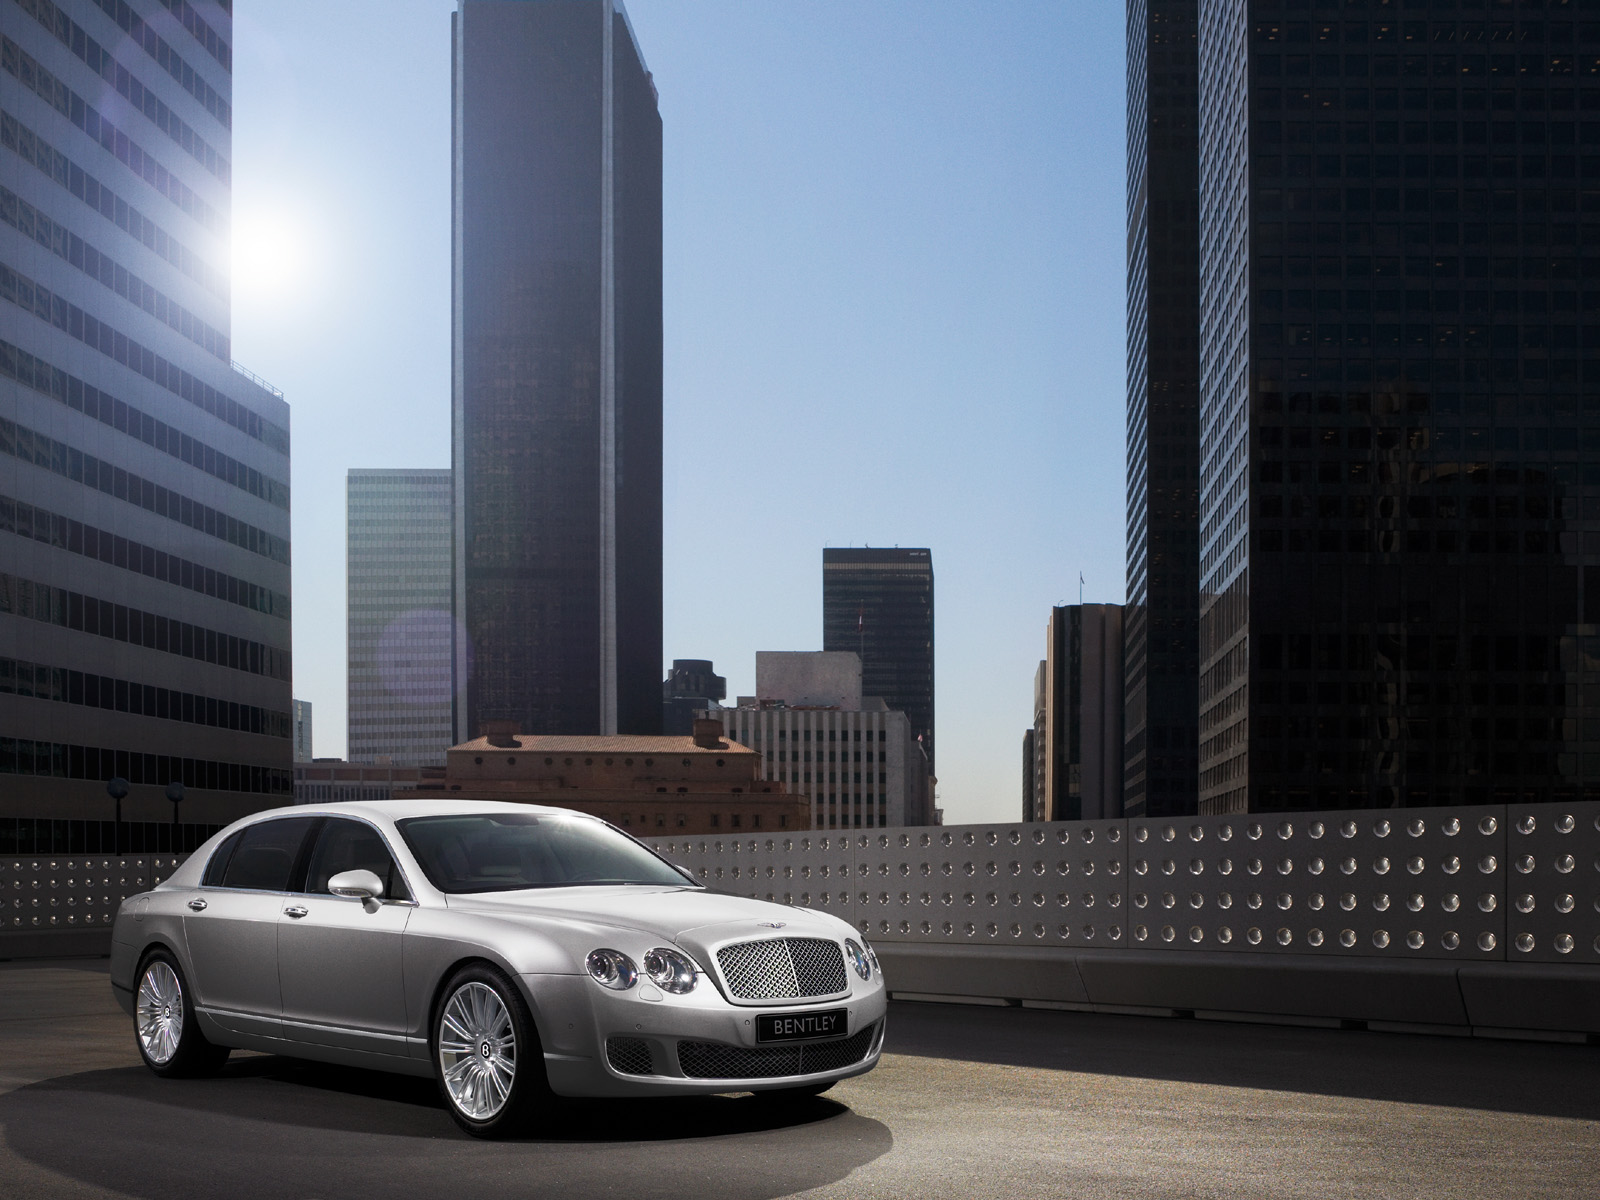 Flying Spur Speed - The